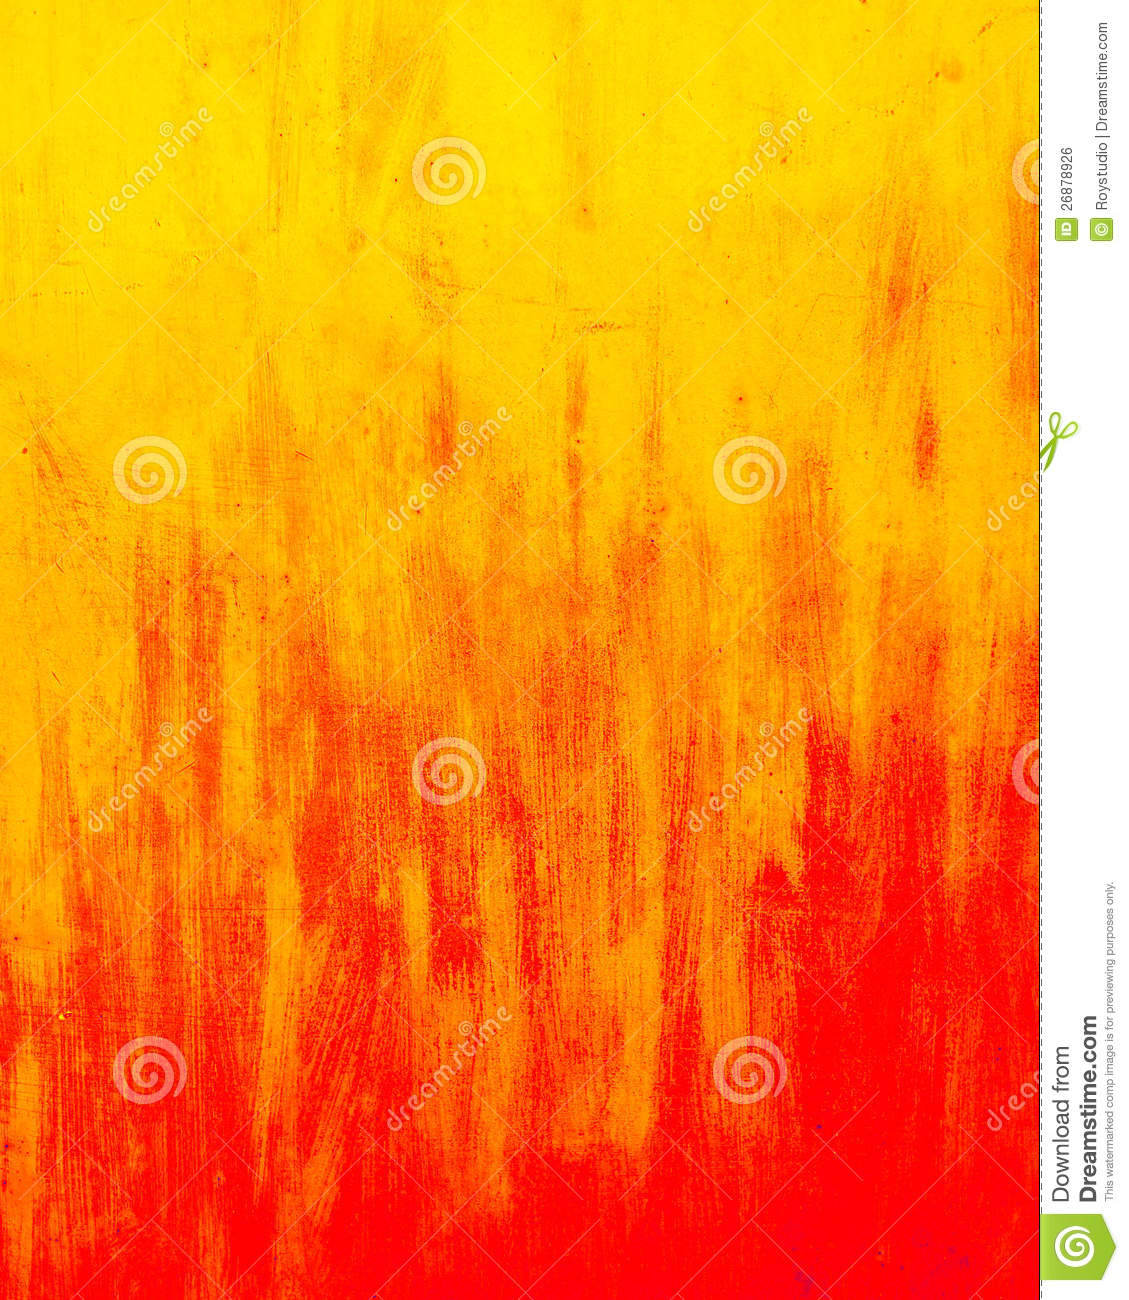 Wall abstract grunge background red and yellow